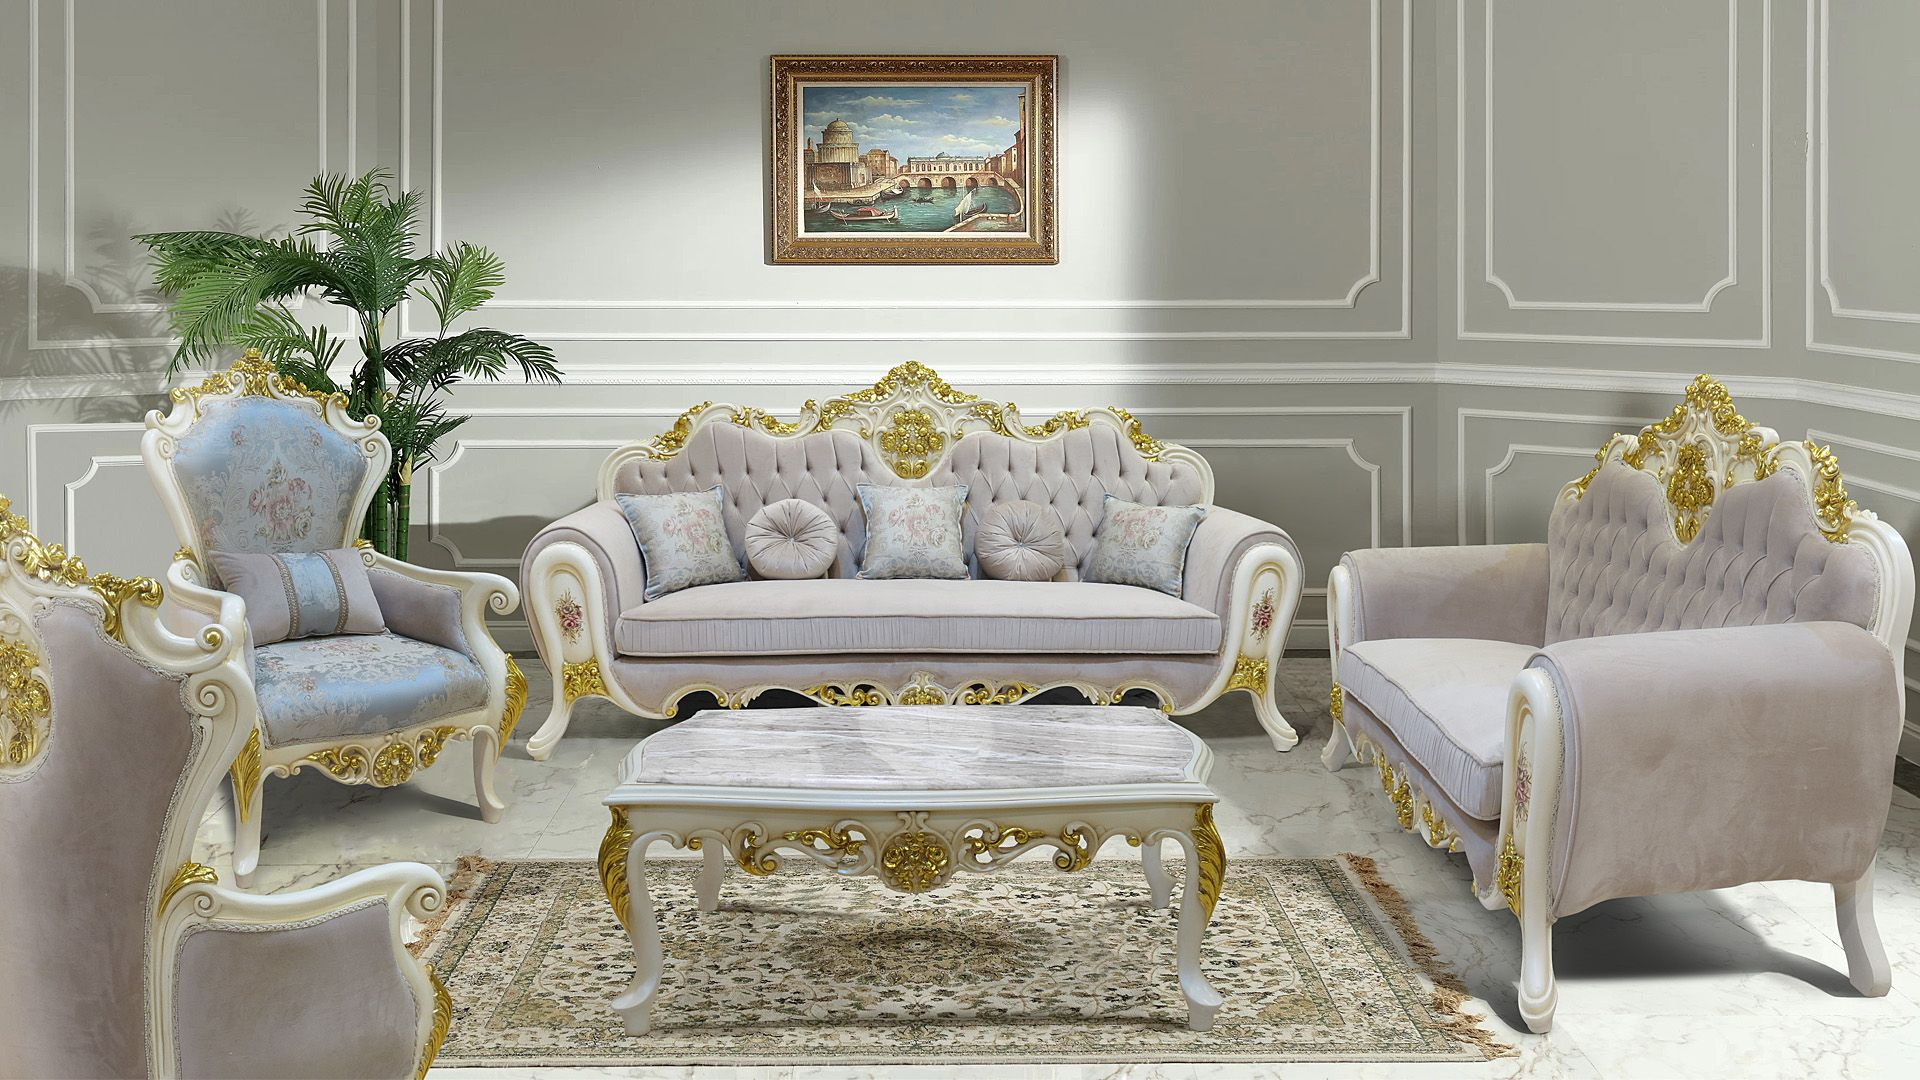 أسعد زهران للأثاث Victoria صالون كلاسيك In 2021 Furniture Home Decor Decor